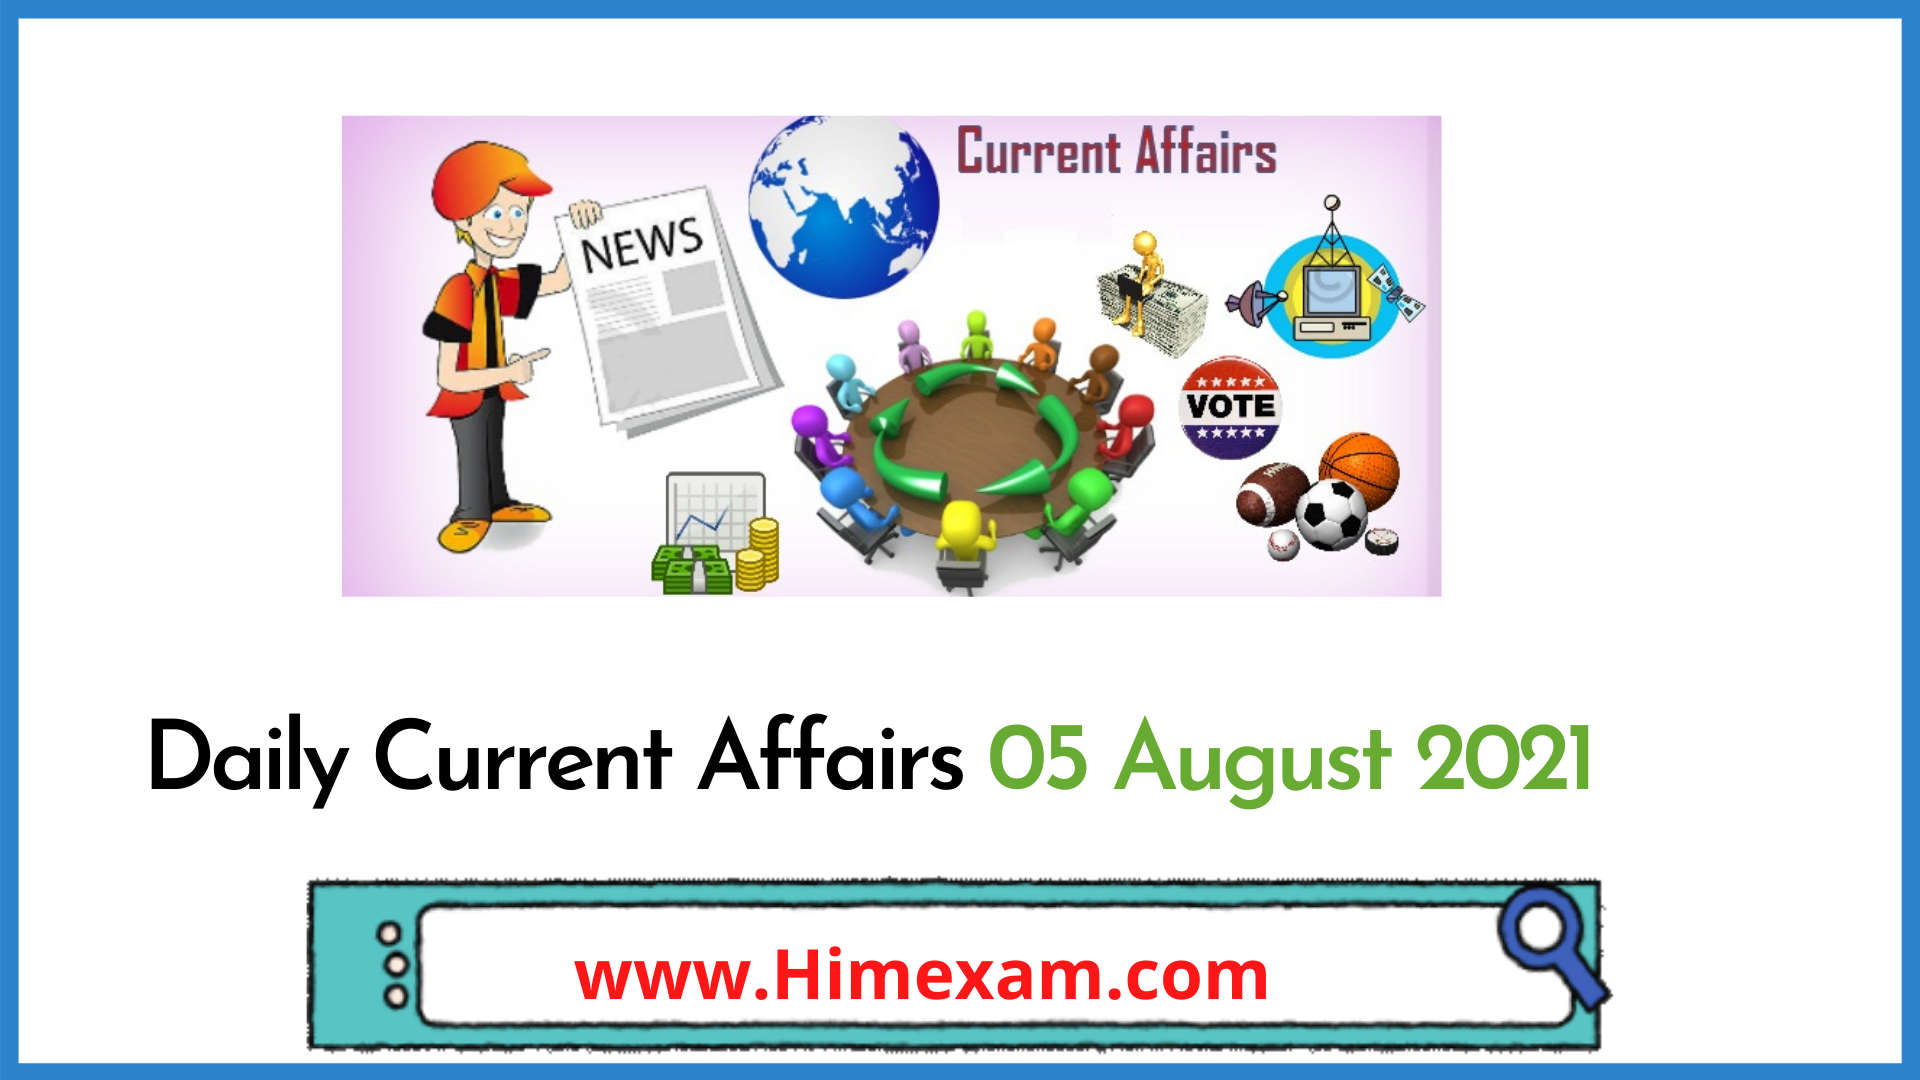 Daily Current Affairs 05 August 2021